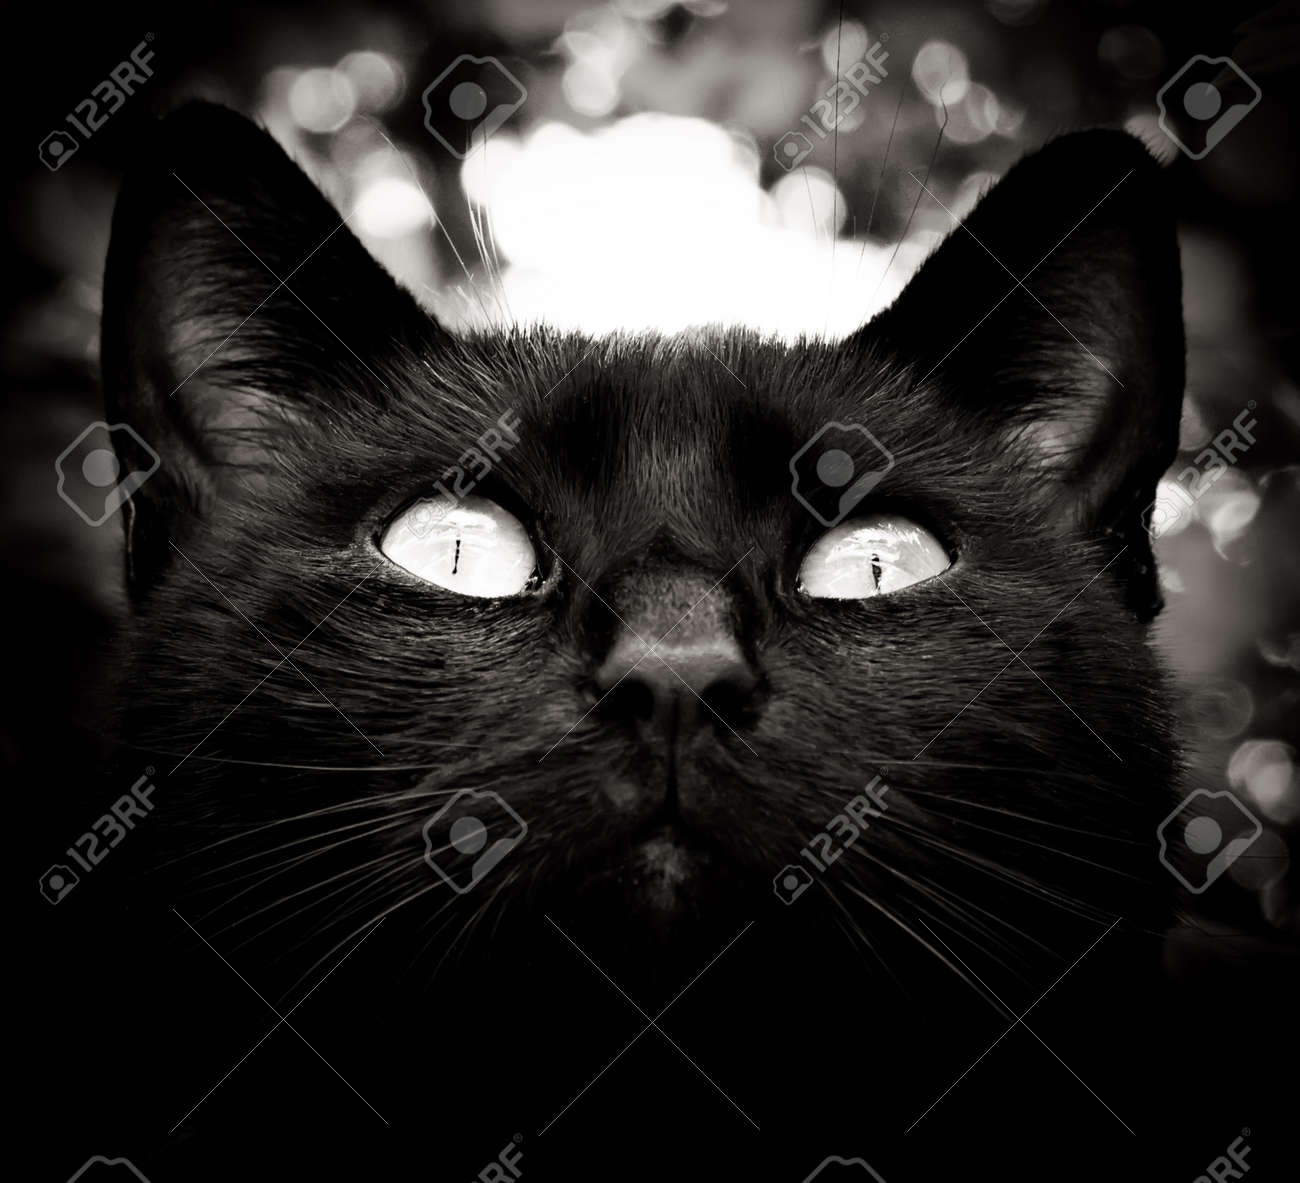 High contrast black and white cat portrait stock photo 15260049